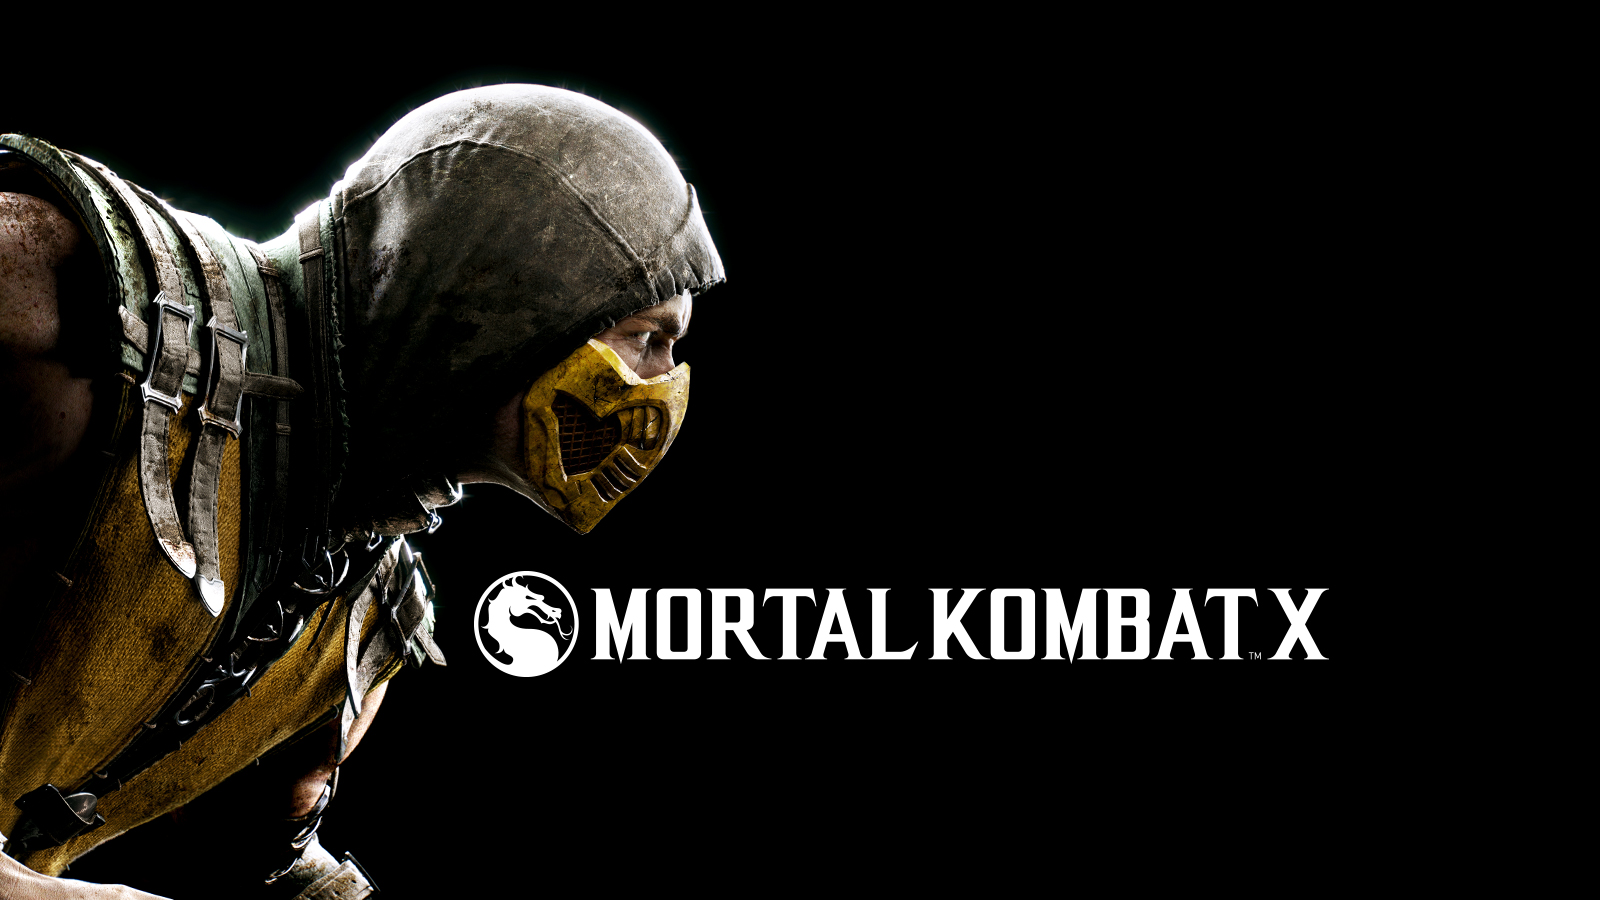 MORTAL KOMBAT X v1.1.0 [MOD Money / Coins & Souls]